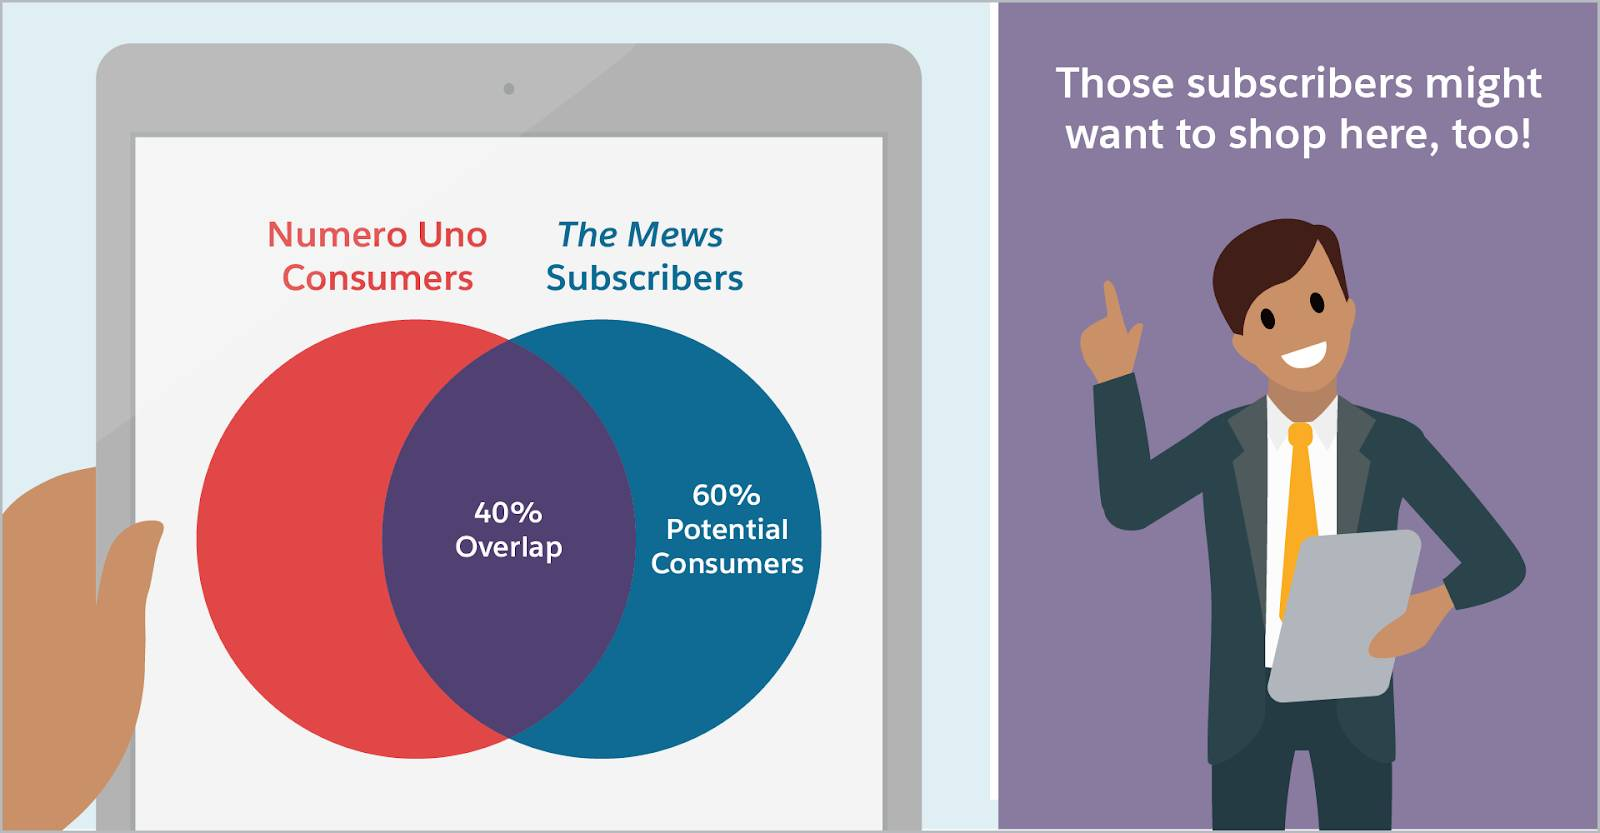 """On the left is a Venn diagram showing the overlap of Numero Uno consumers and The Mews subscribers. There is a 40% overlap, which means that 60% of The Mews subscribers are potential consumers for Numero Uno. On the right, we see Jorge, the CMO of Numero Uno, having an aha moment. Jorge says, """"Those subscribers might want to shop here, too!"""""""